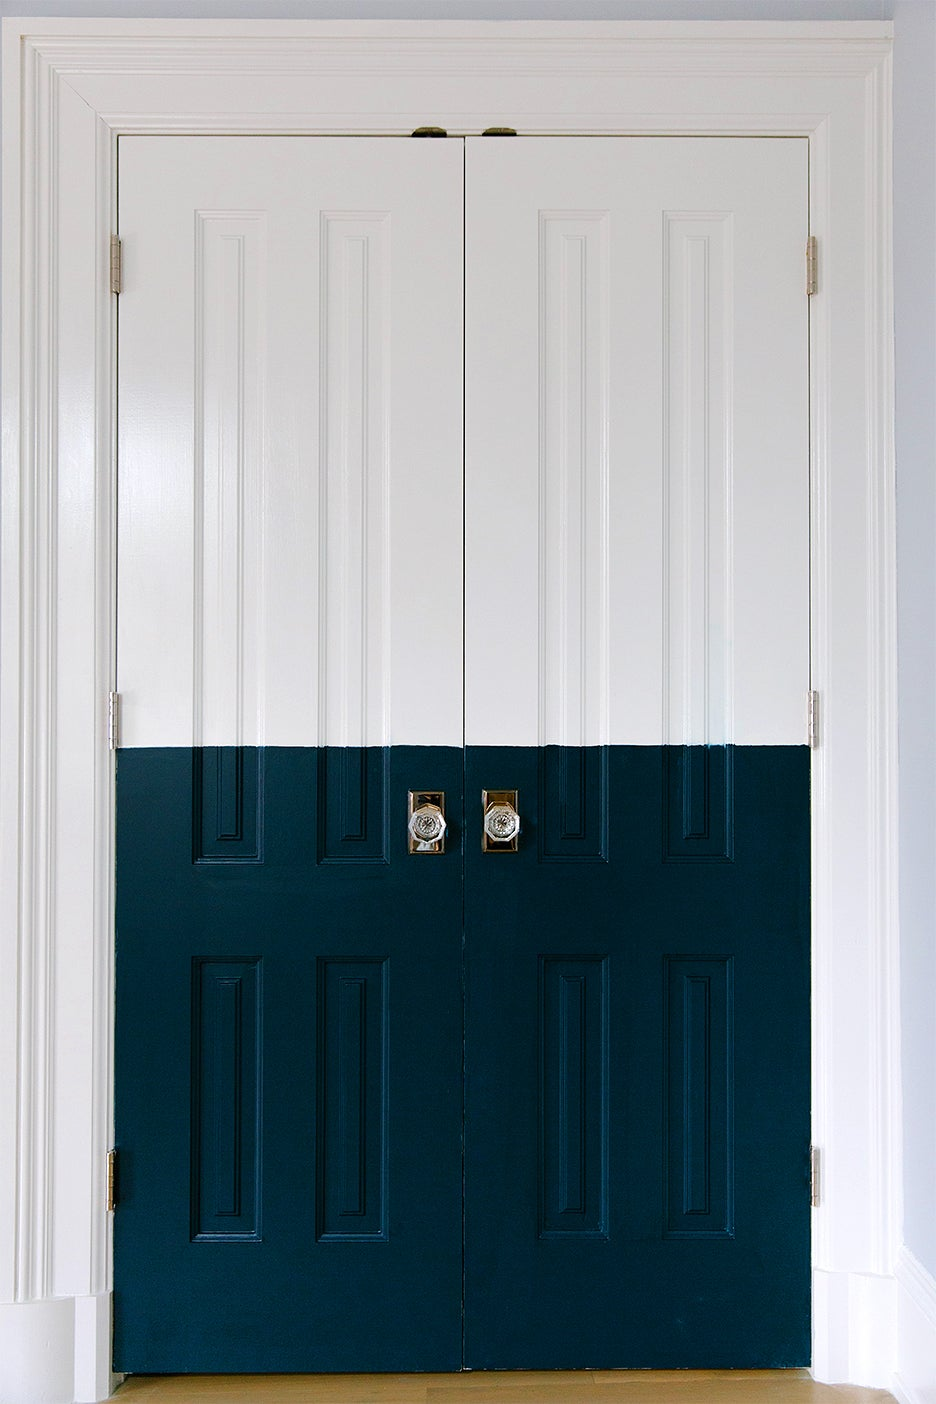 doors painted white and navy